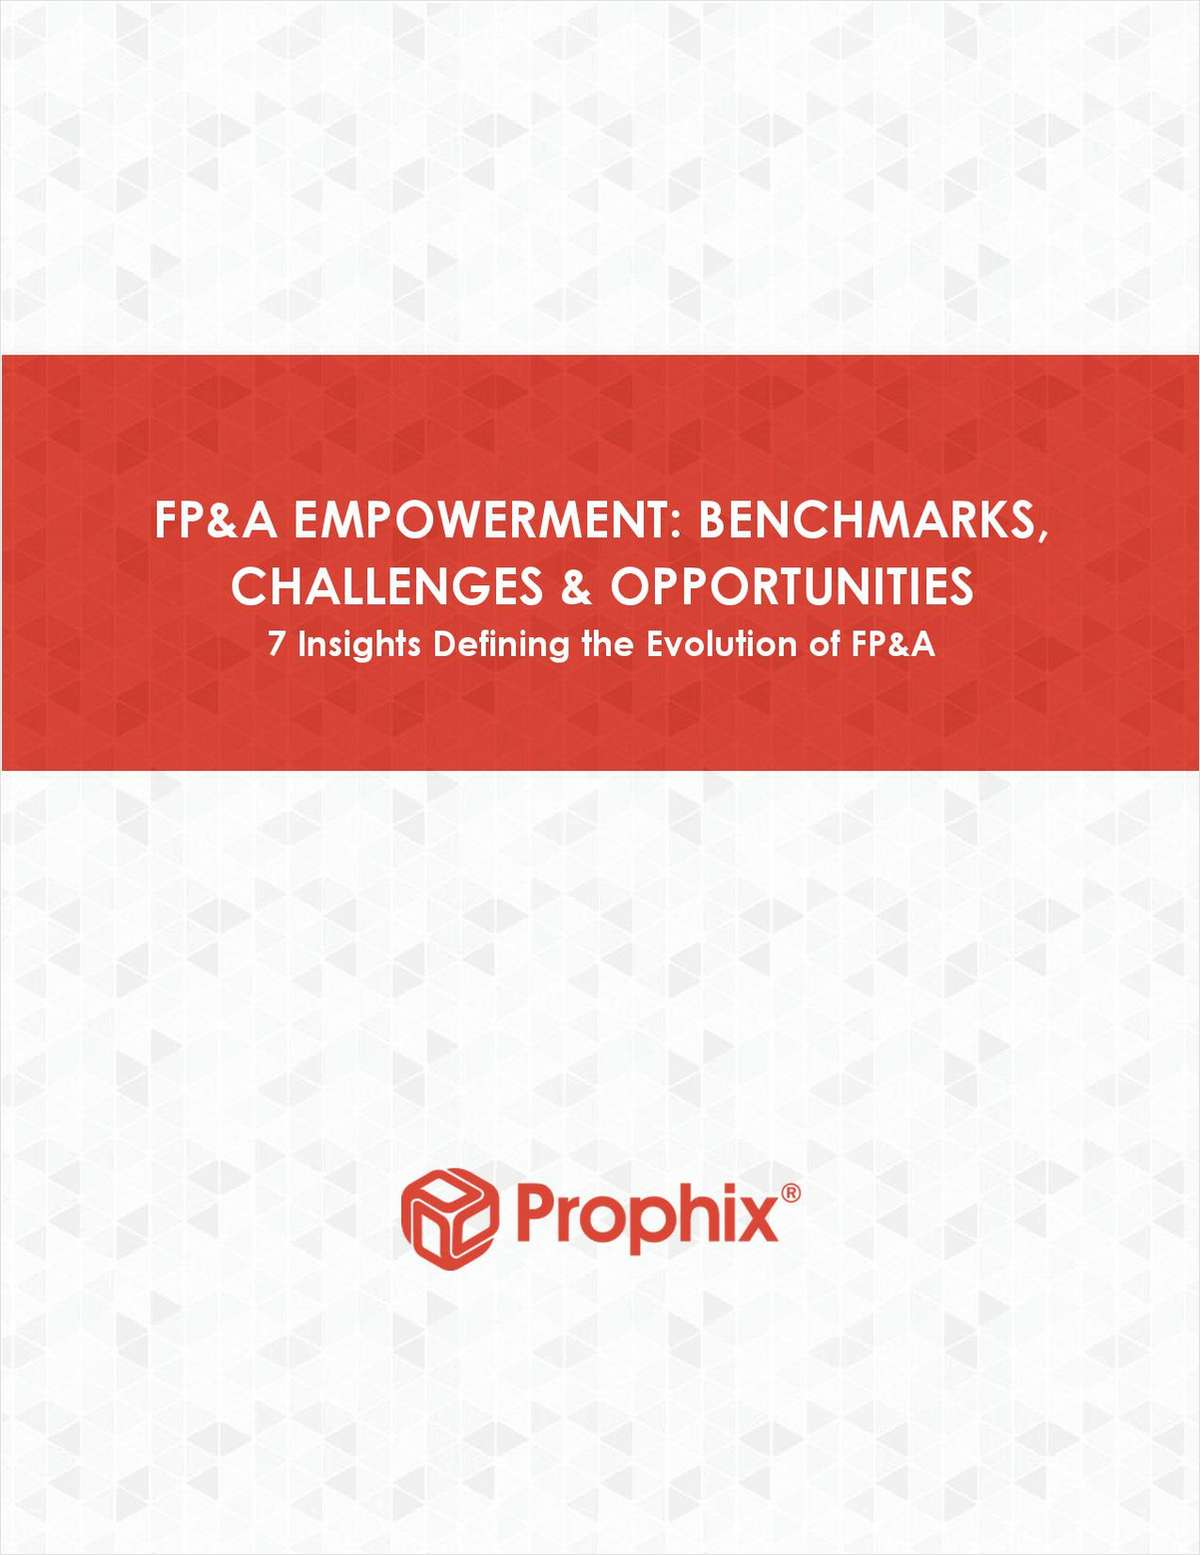 FP&A Empowerment: Benchmarks, Challenges & Opportunities